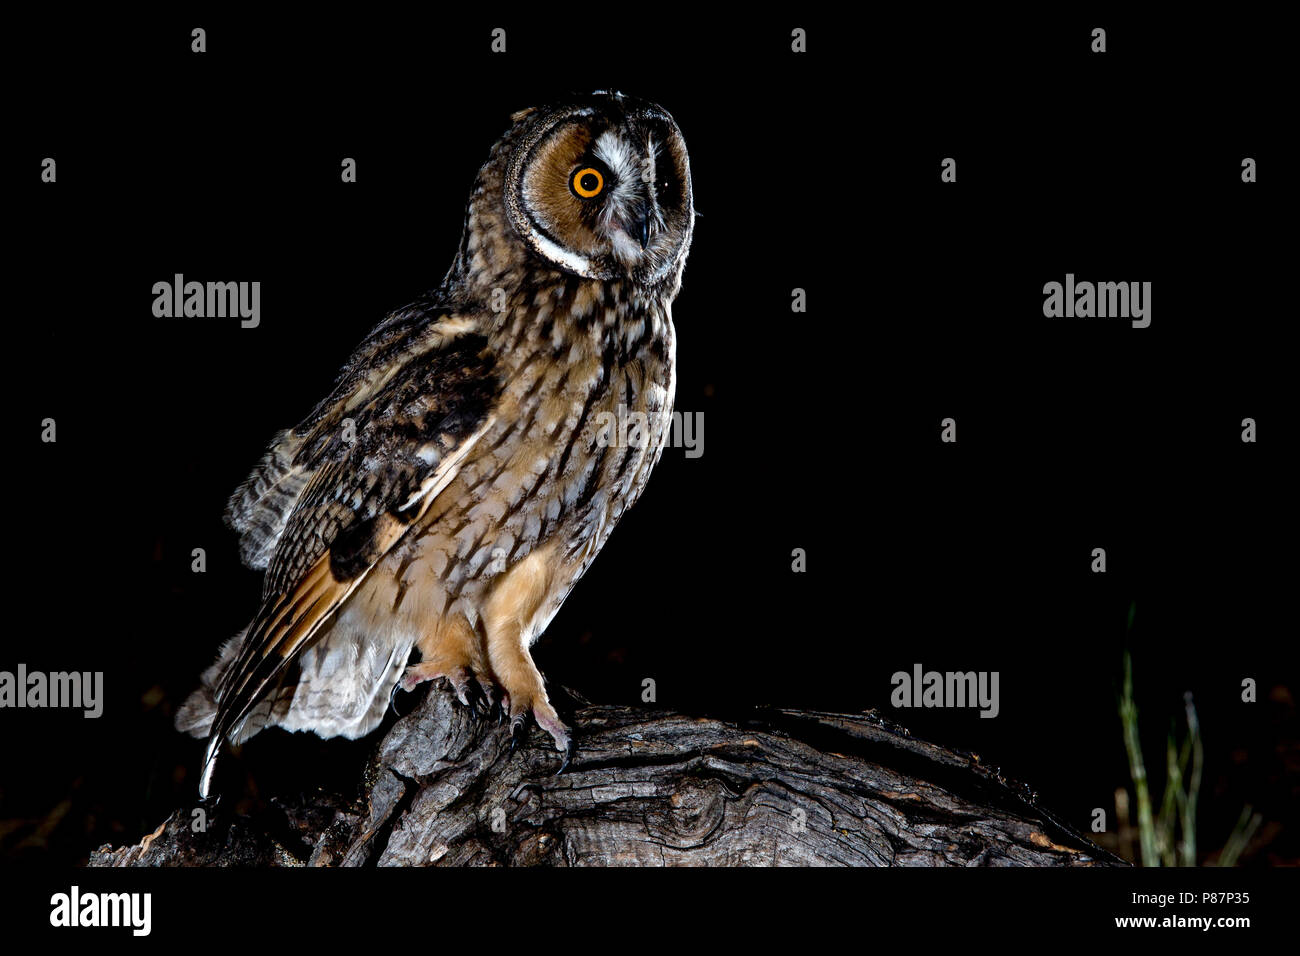 Long-eared Owl, Ransuil, Asio otis - Stock Image